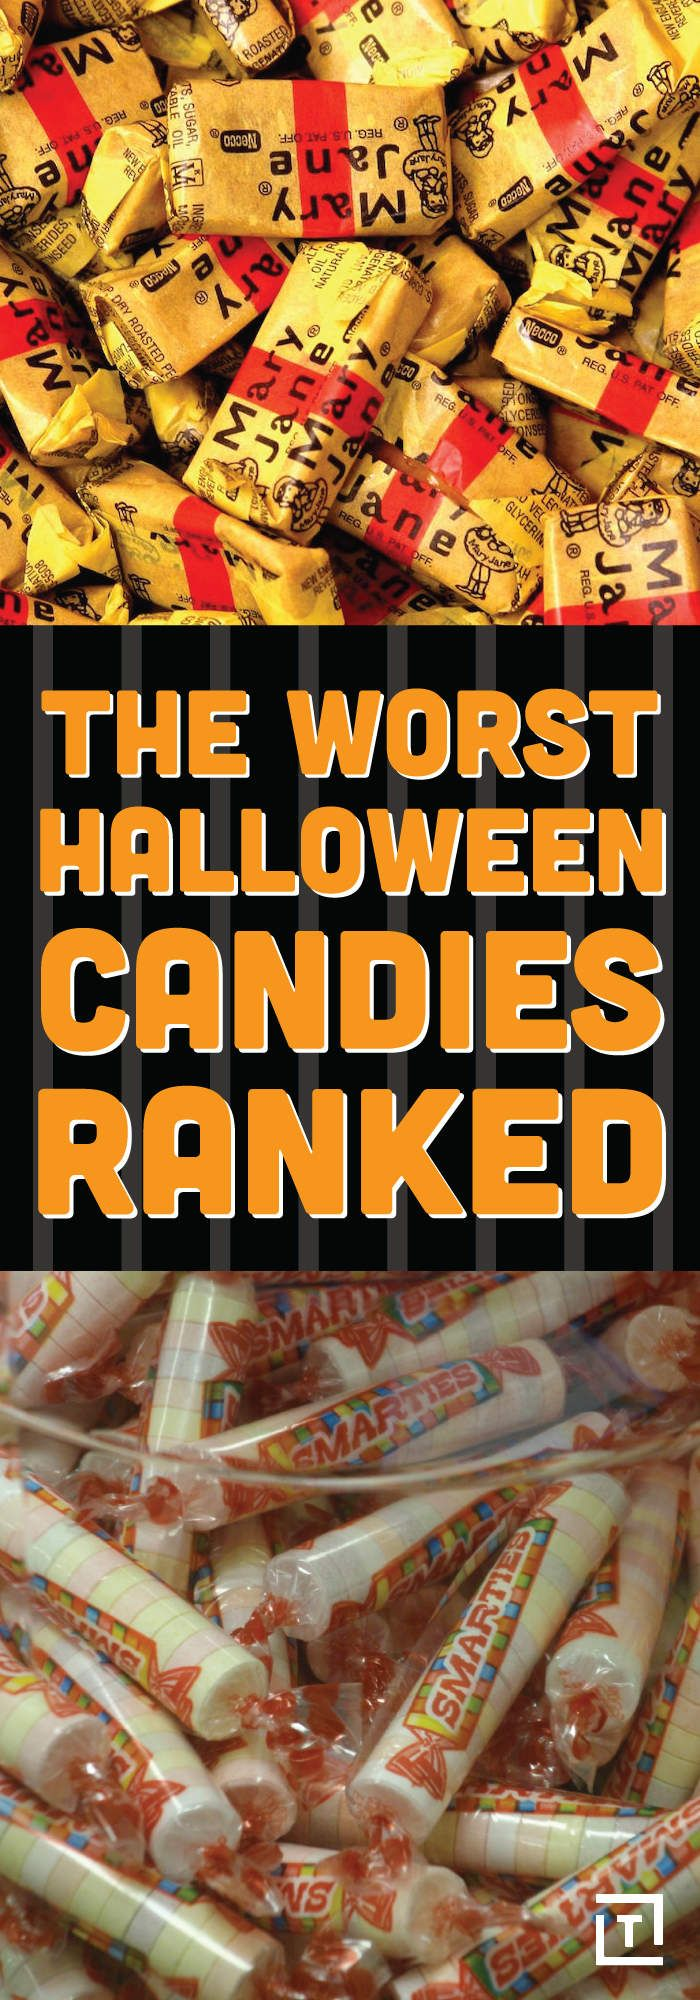 THE 18 WORST HALLOWEEN CANDIES KNOWN TO MAN